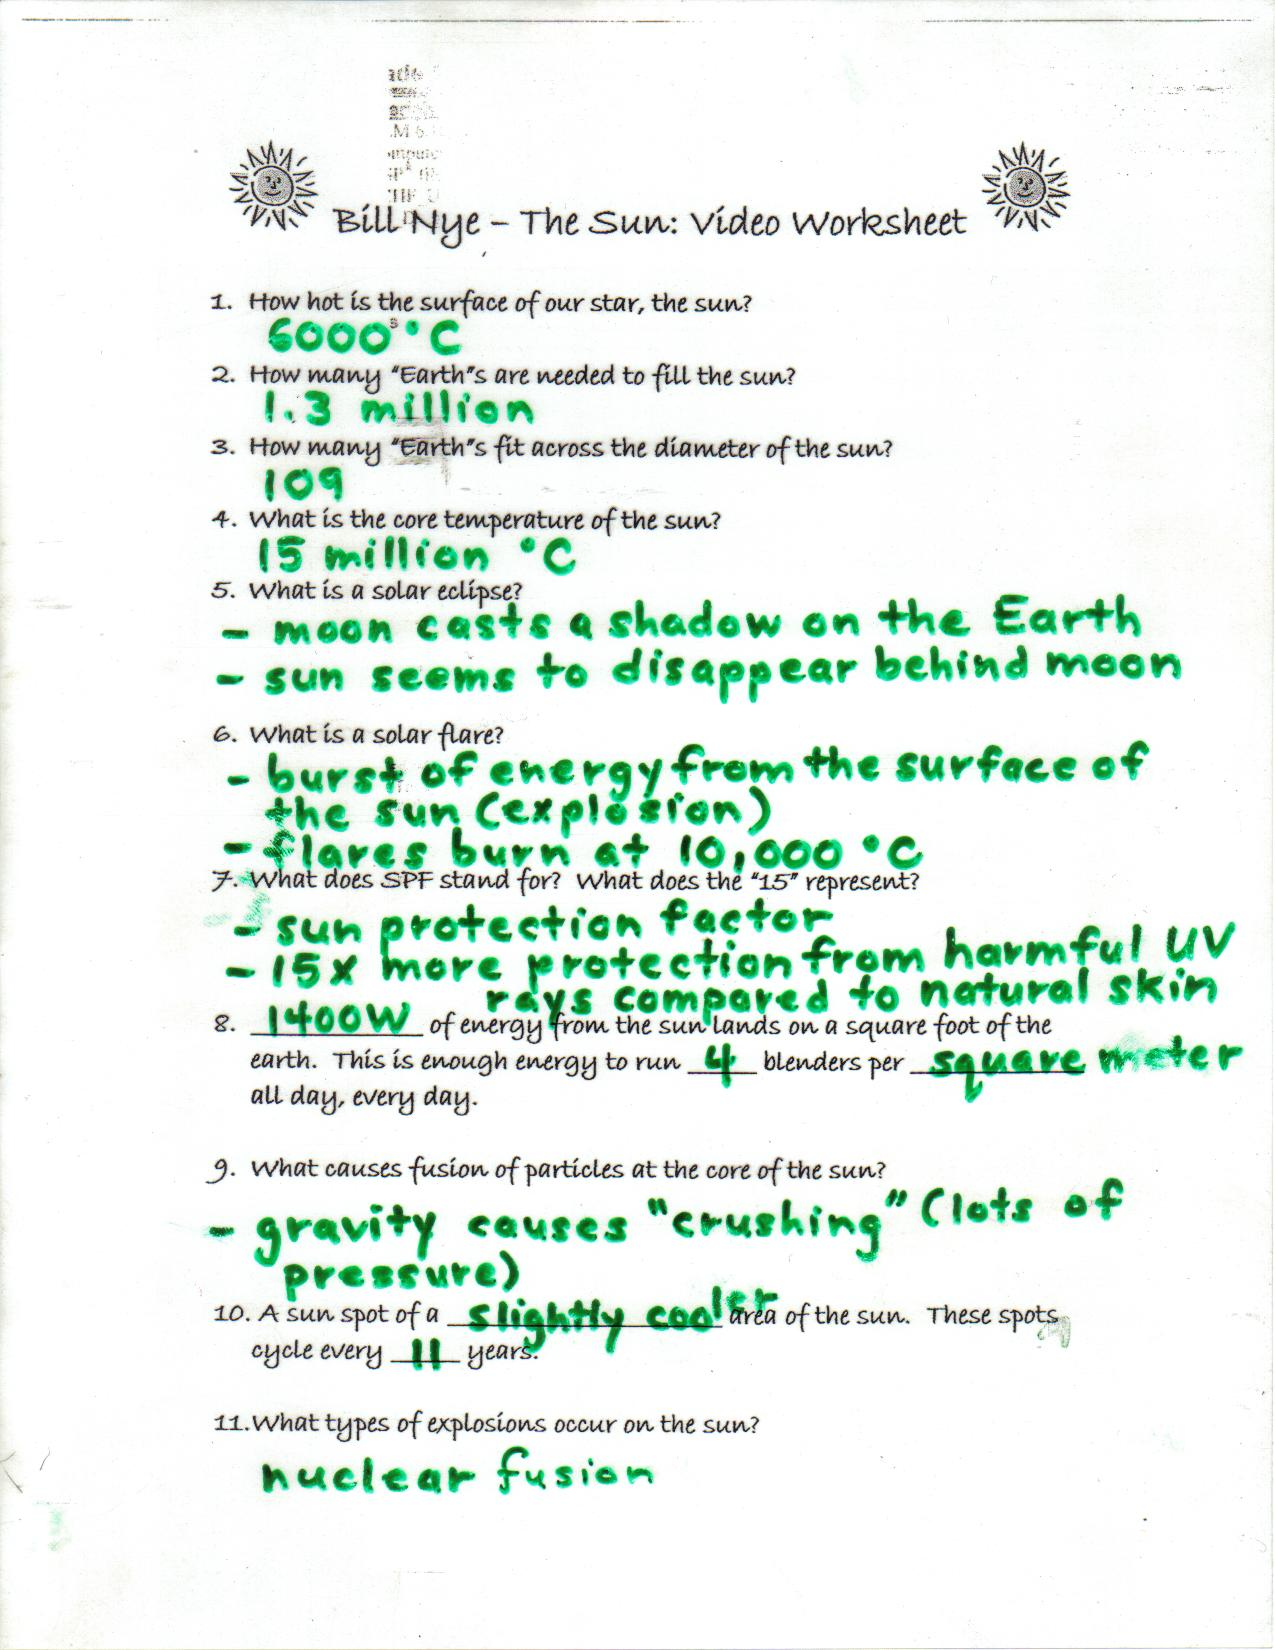 Bill Nye Skin Worksheet